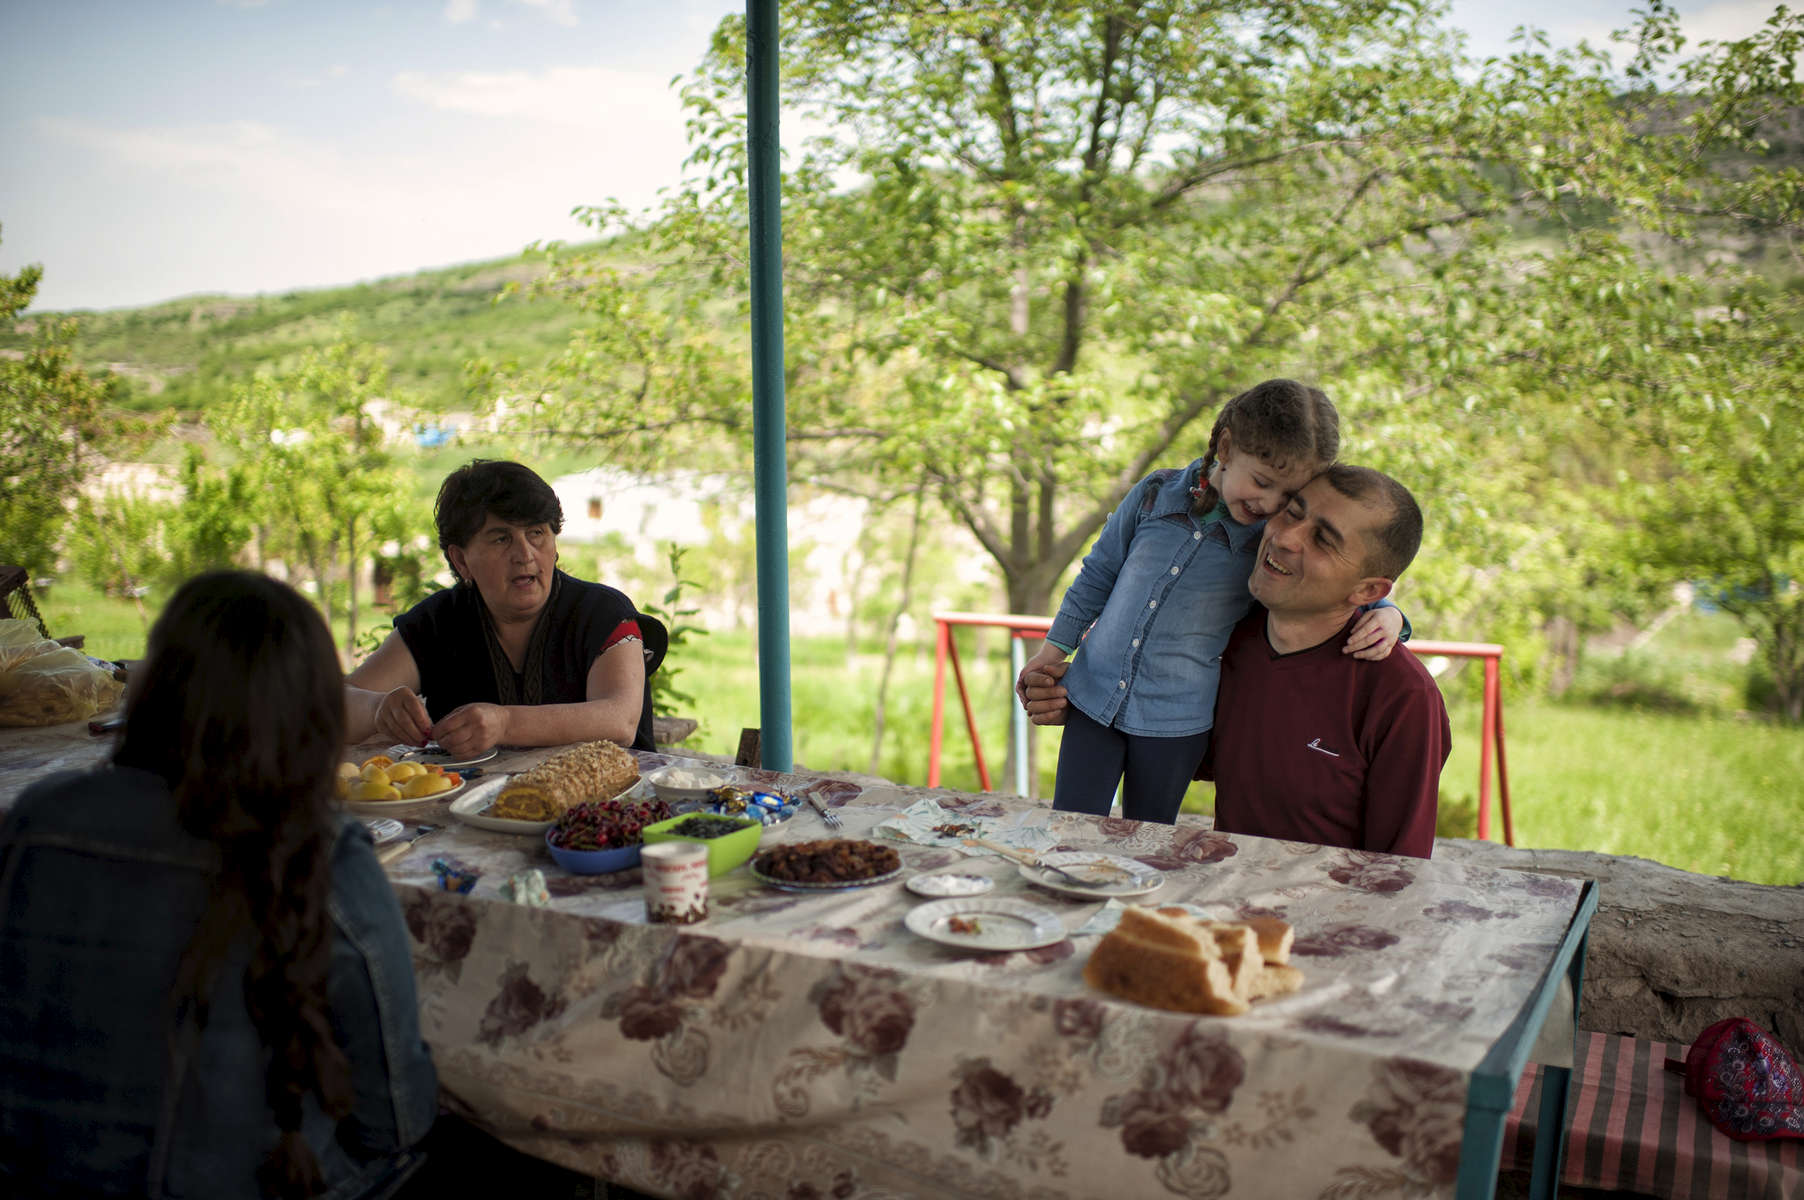 HALO supervisor Melord Aslanian enjoys a Saturday off with his family at his dacha in Achapniak, not too far from the HALO Trust HQ in Stepanakert.